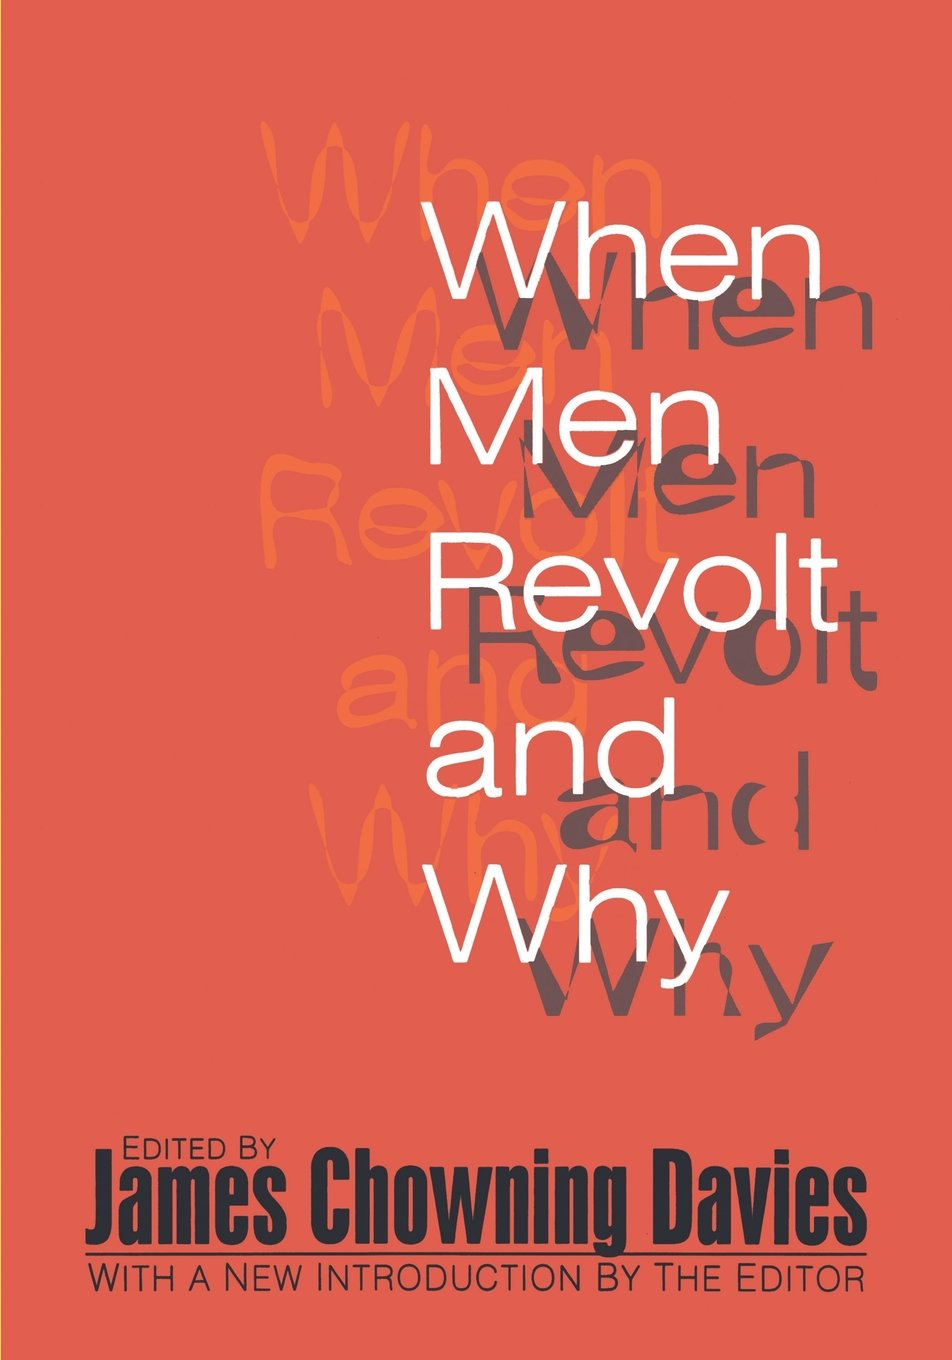 Amazon.com: When Men Revolt and Why (9781560009399): James Chowning Davies:  Books